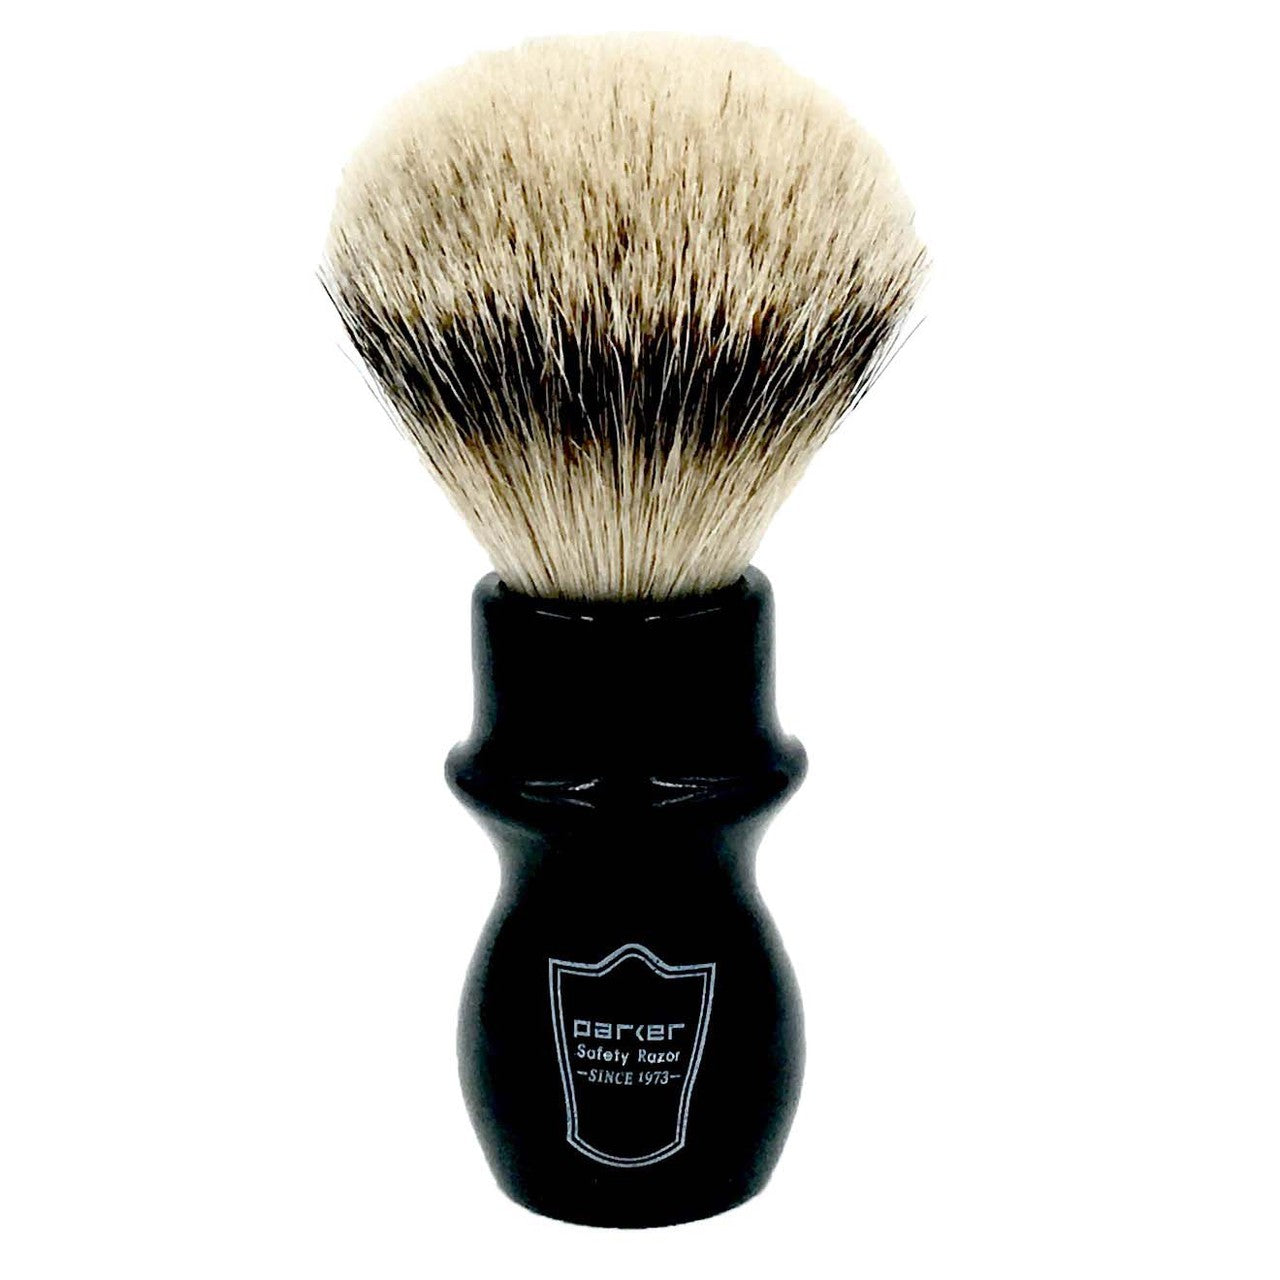 Parker - BMST Black Mug Silvertip Badger Shaving Brush